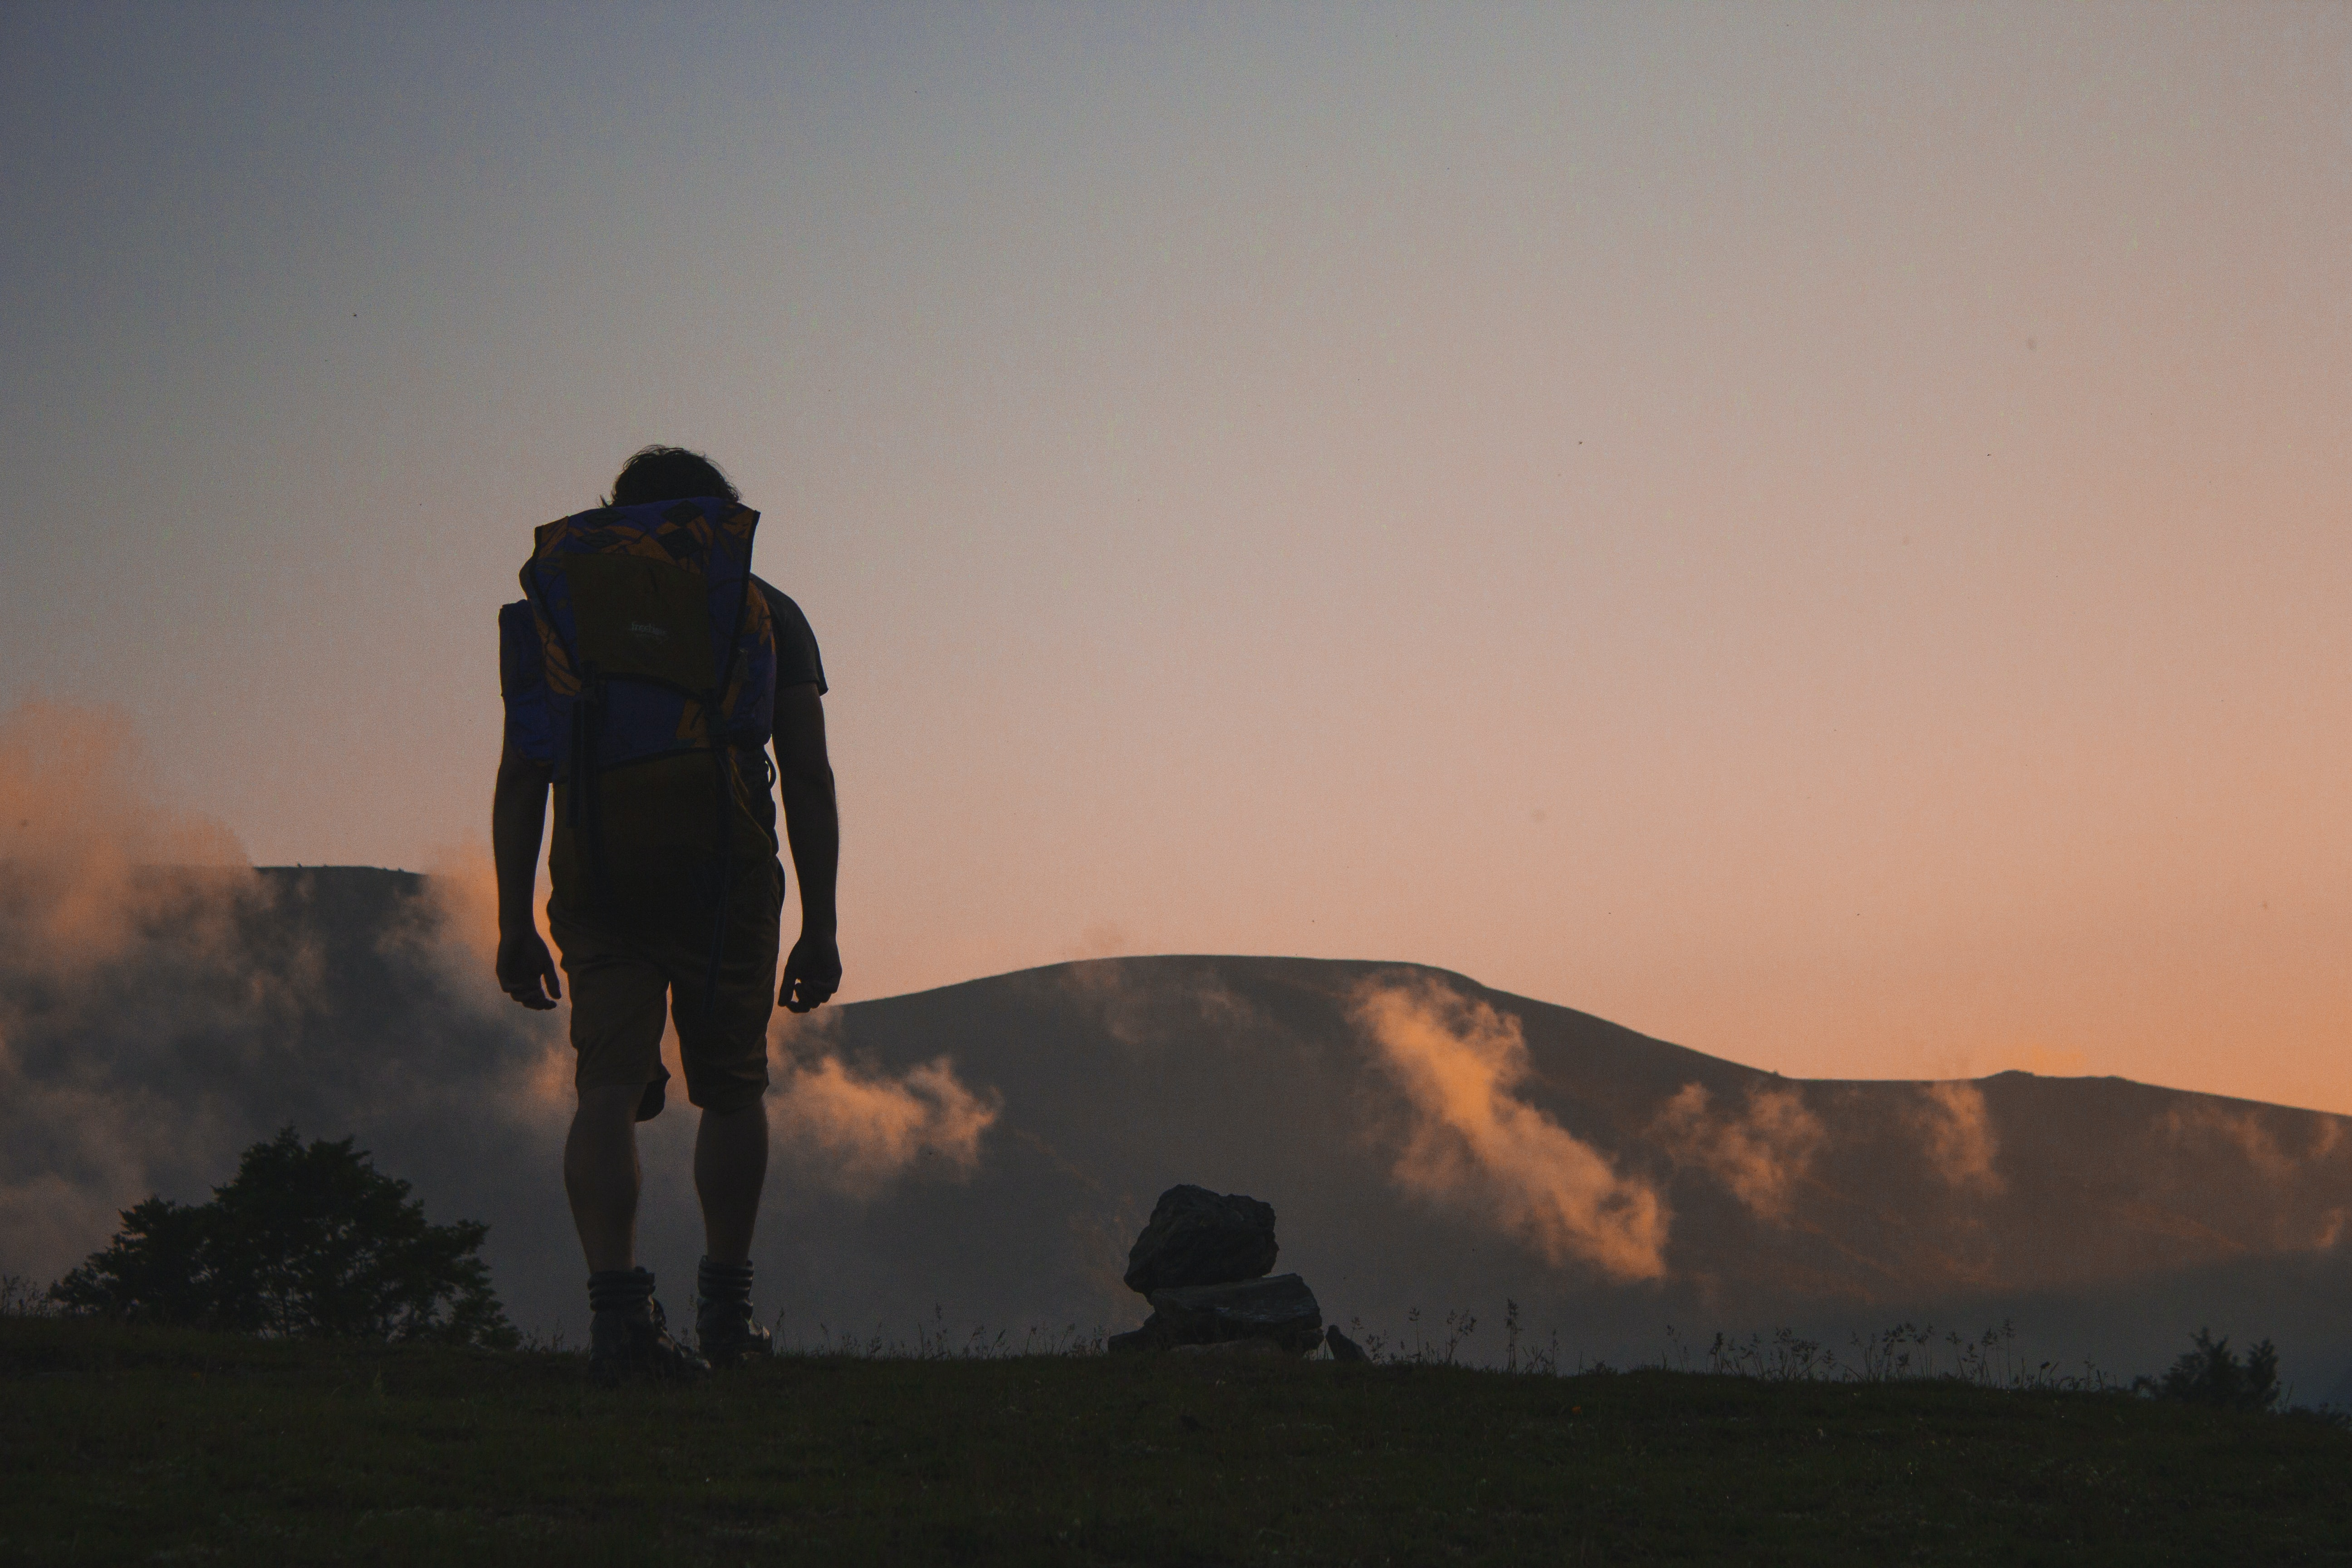 silhouette of man walking along field leading to mountain